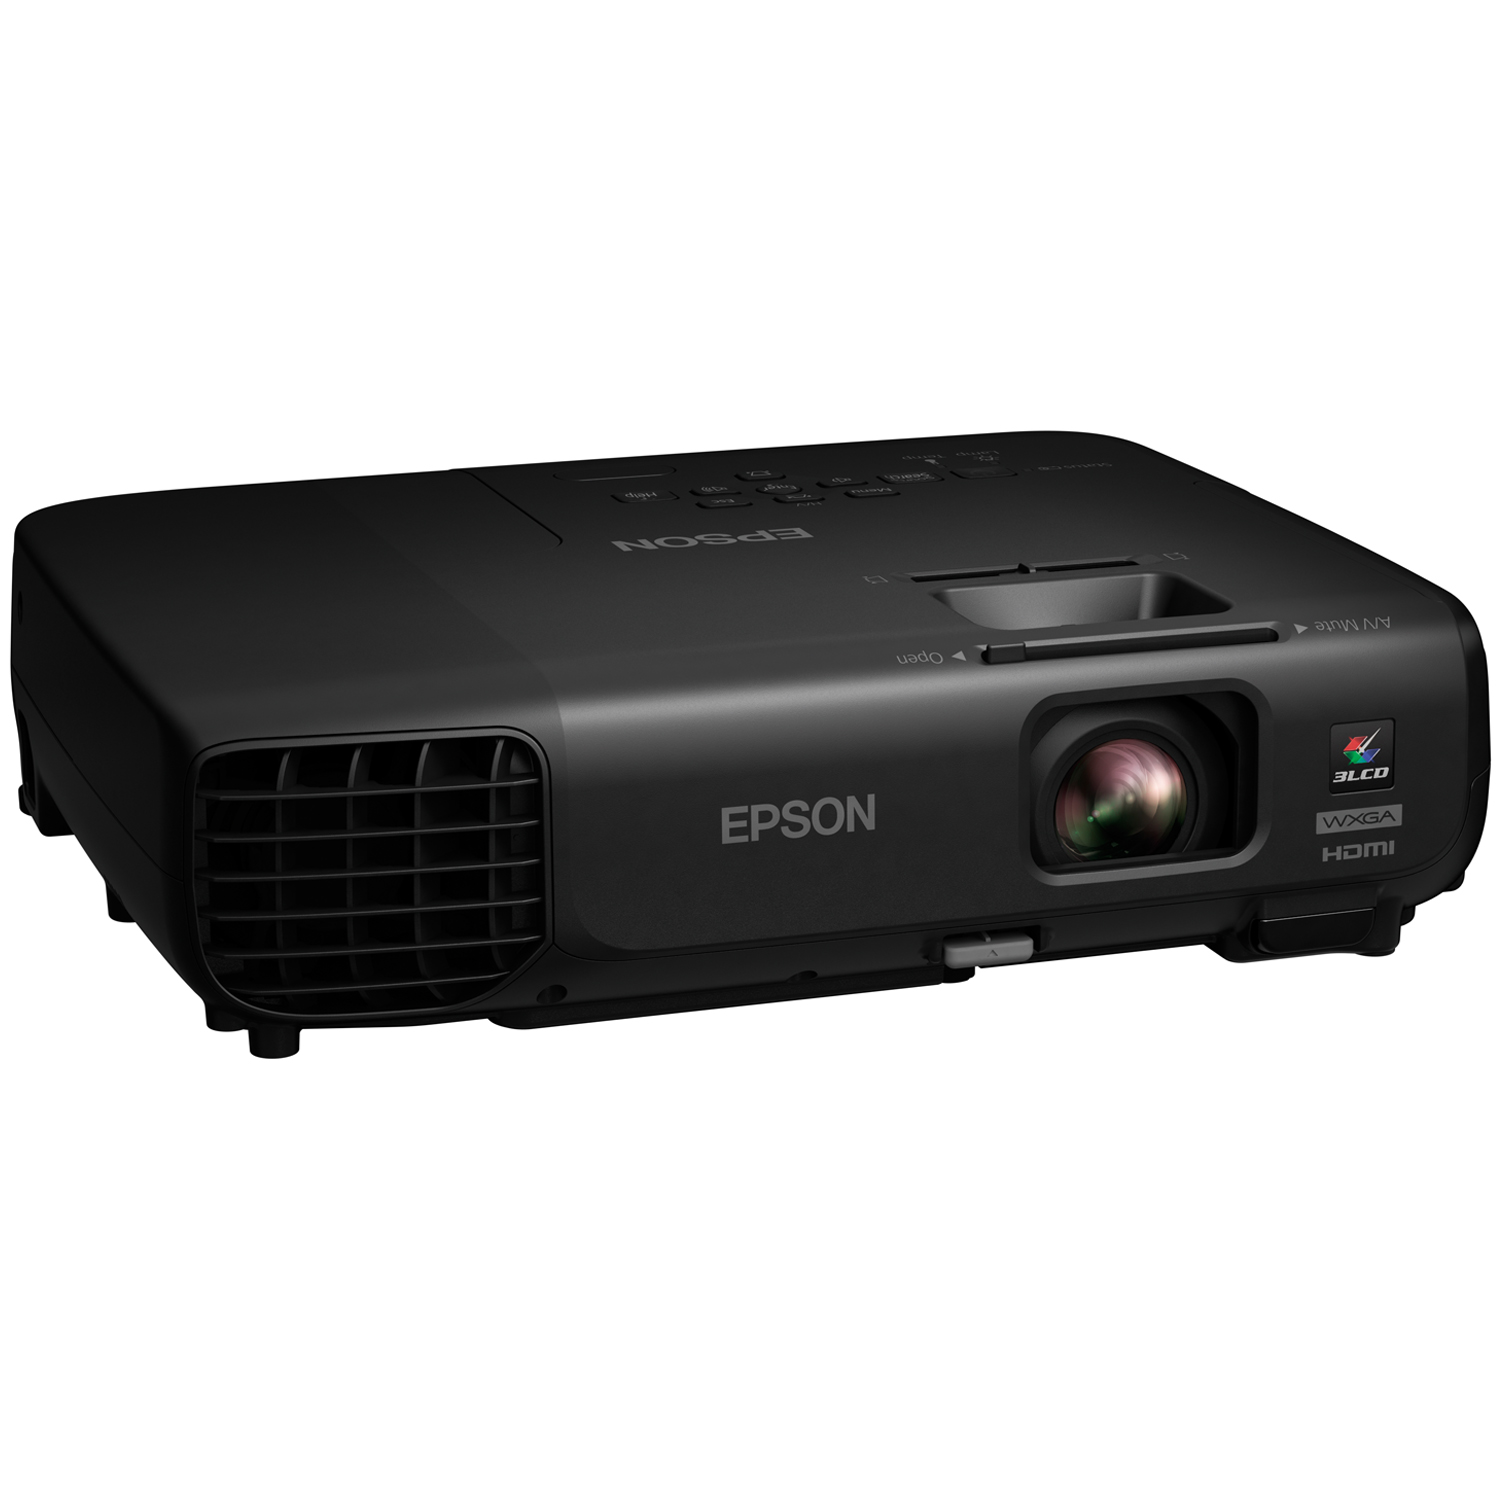 Проектор Epson EB-W03 LCD WXGA, 1200х800, 10000:1,  2700 Lm, 5000hrs, HDMI, D-sub, S-video, USB, Speaker, Black